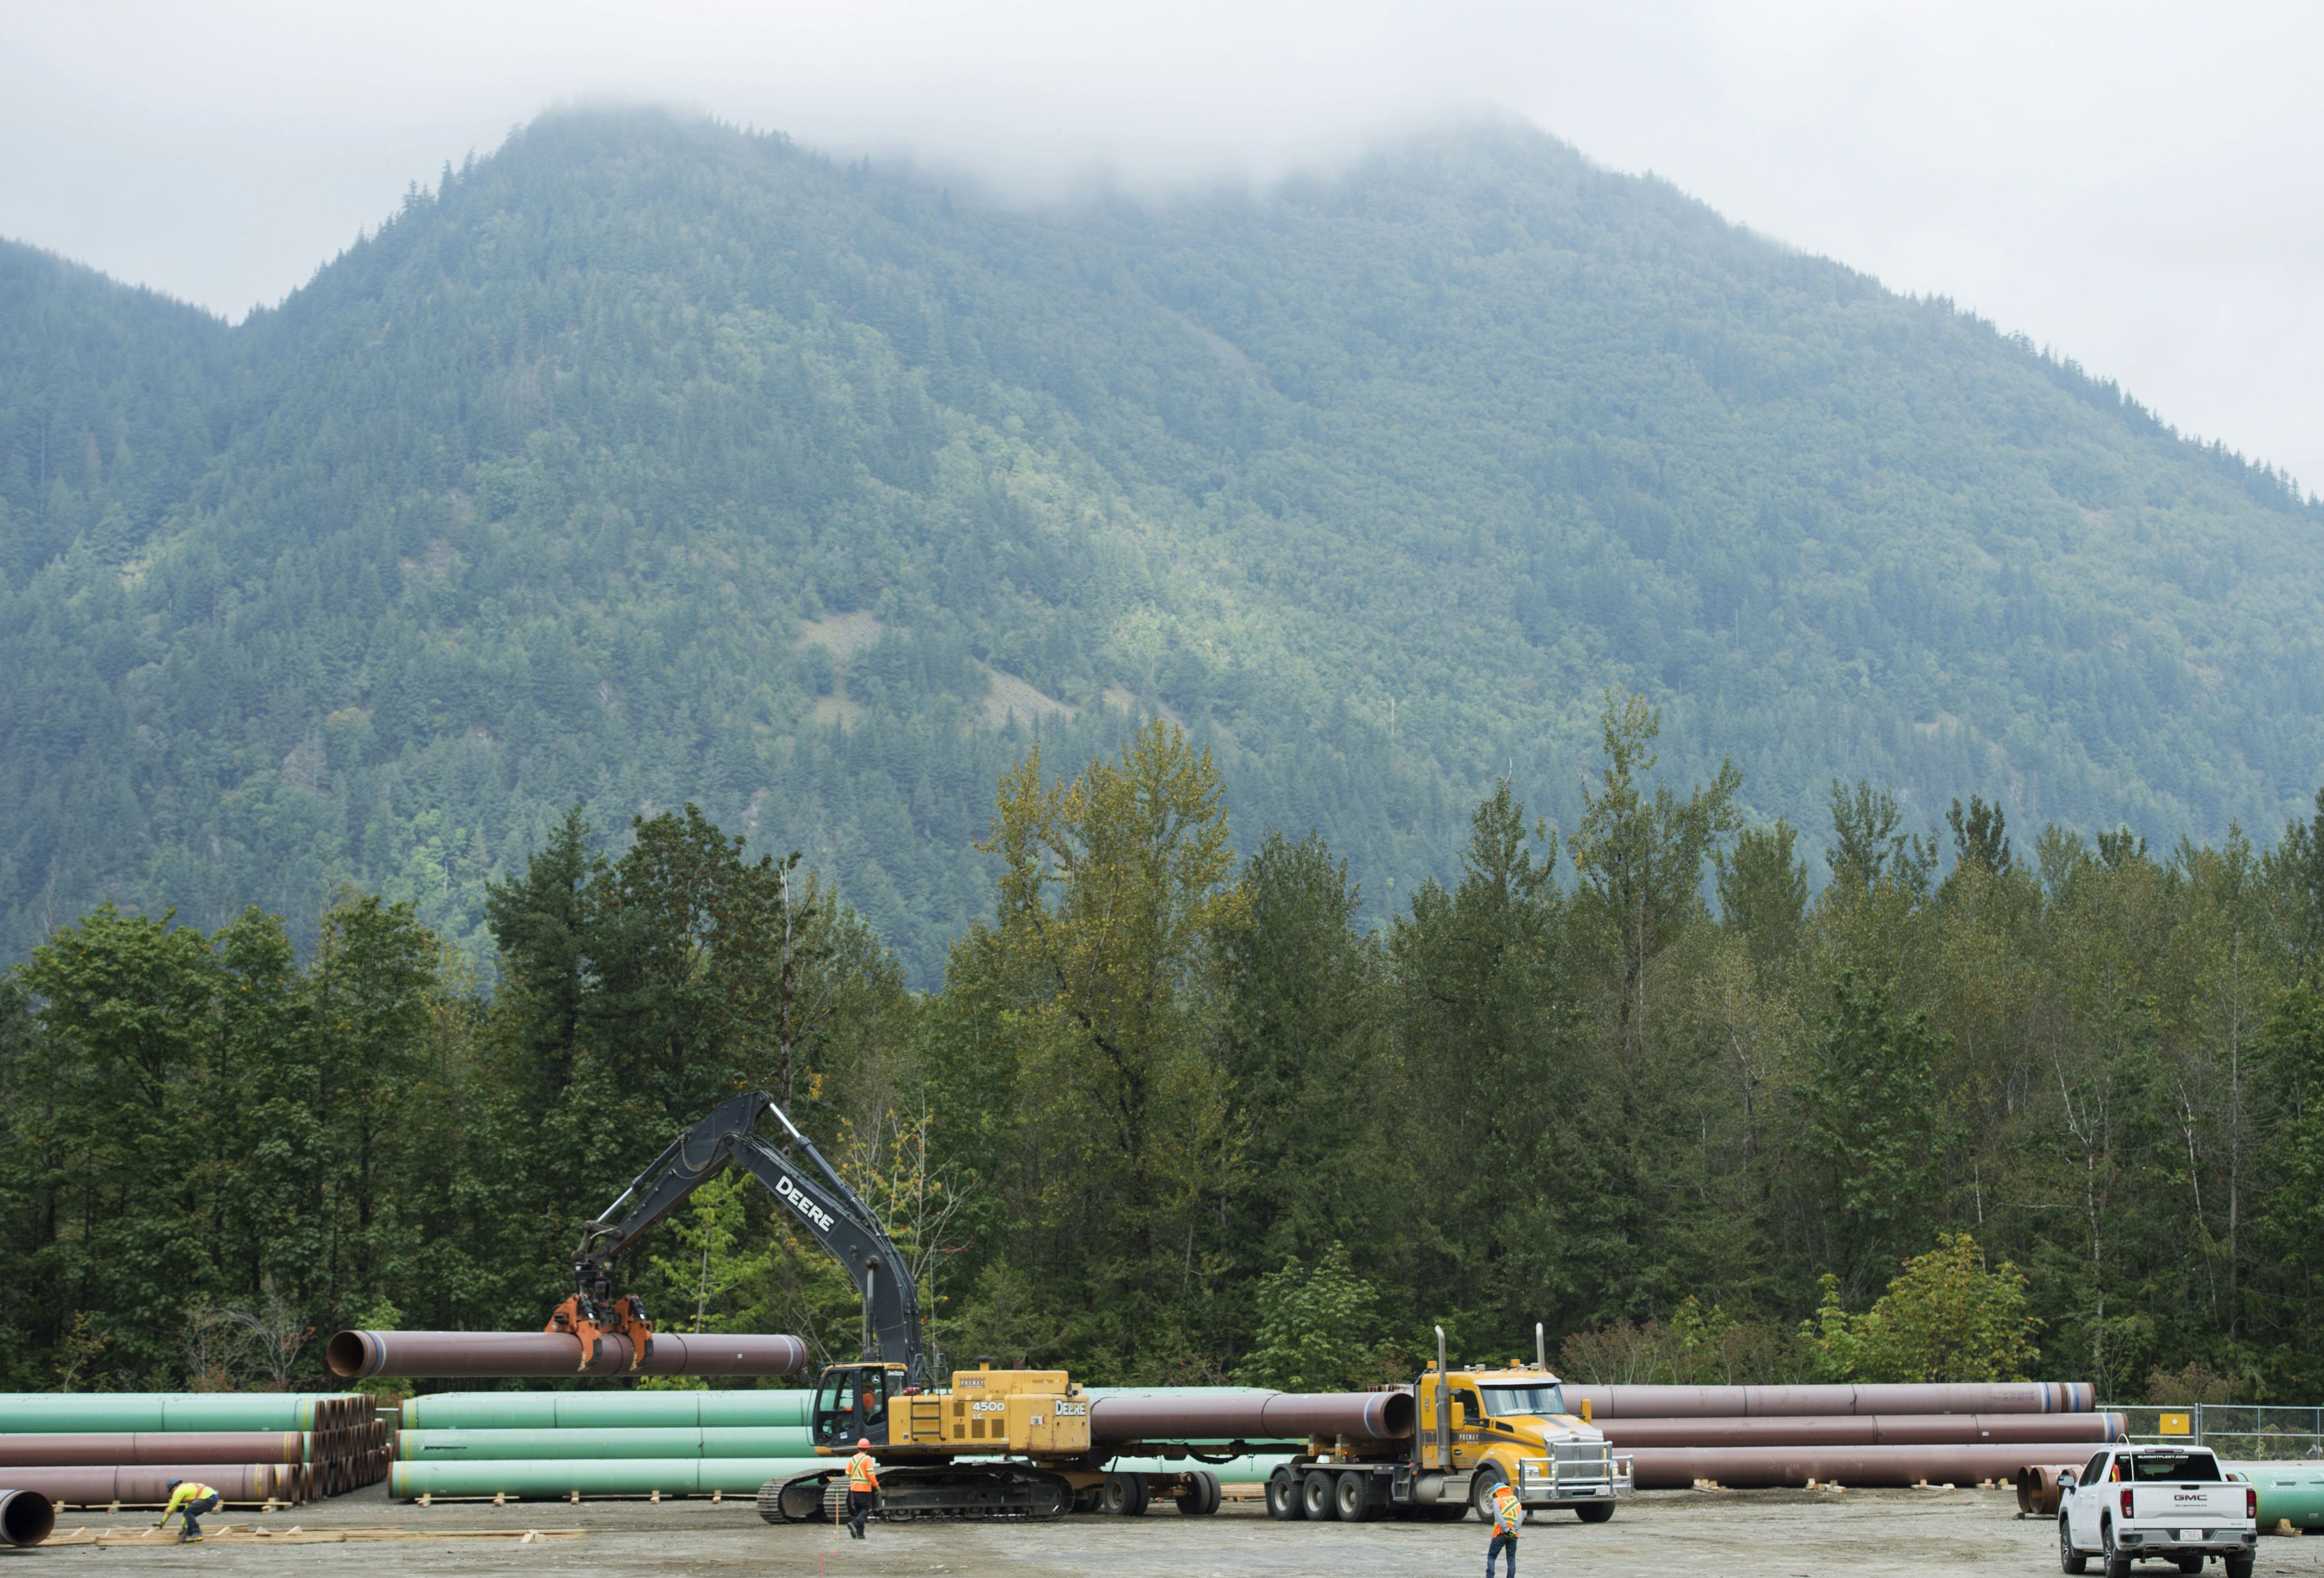 Two B.C. First Nations drop out of court challenge, sign deals with Trans Mountain